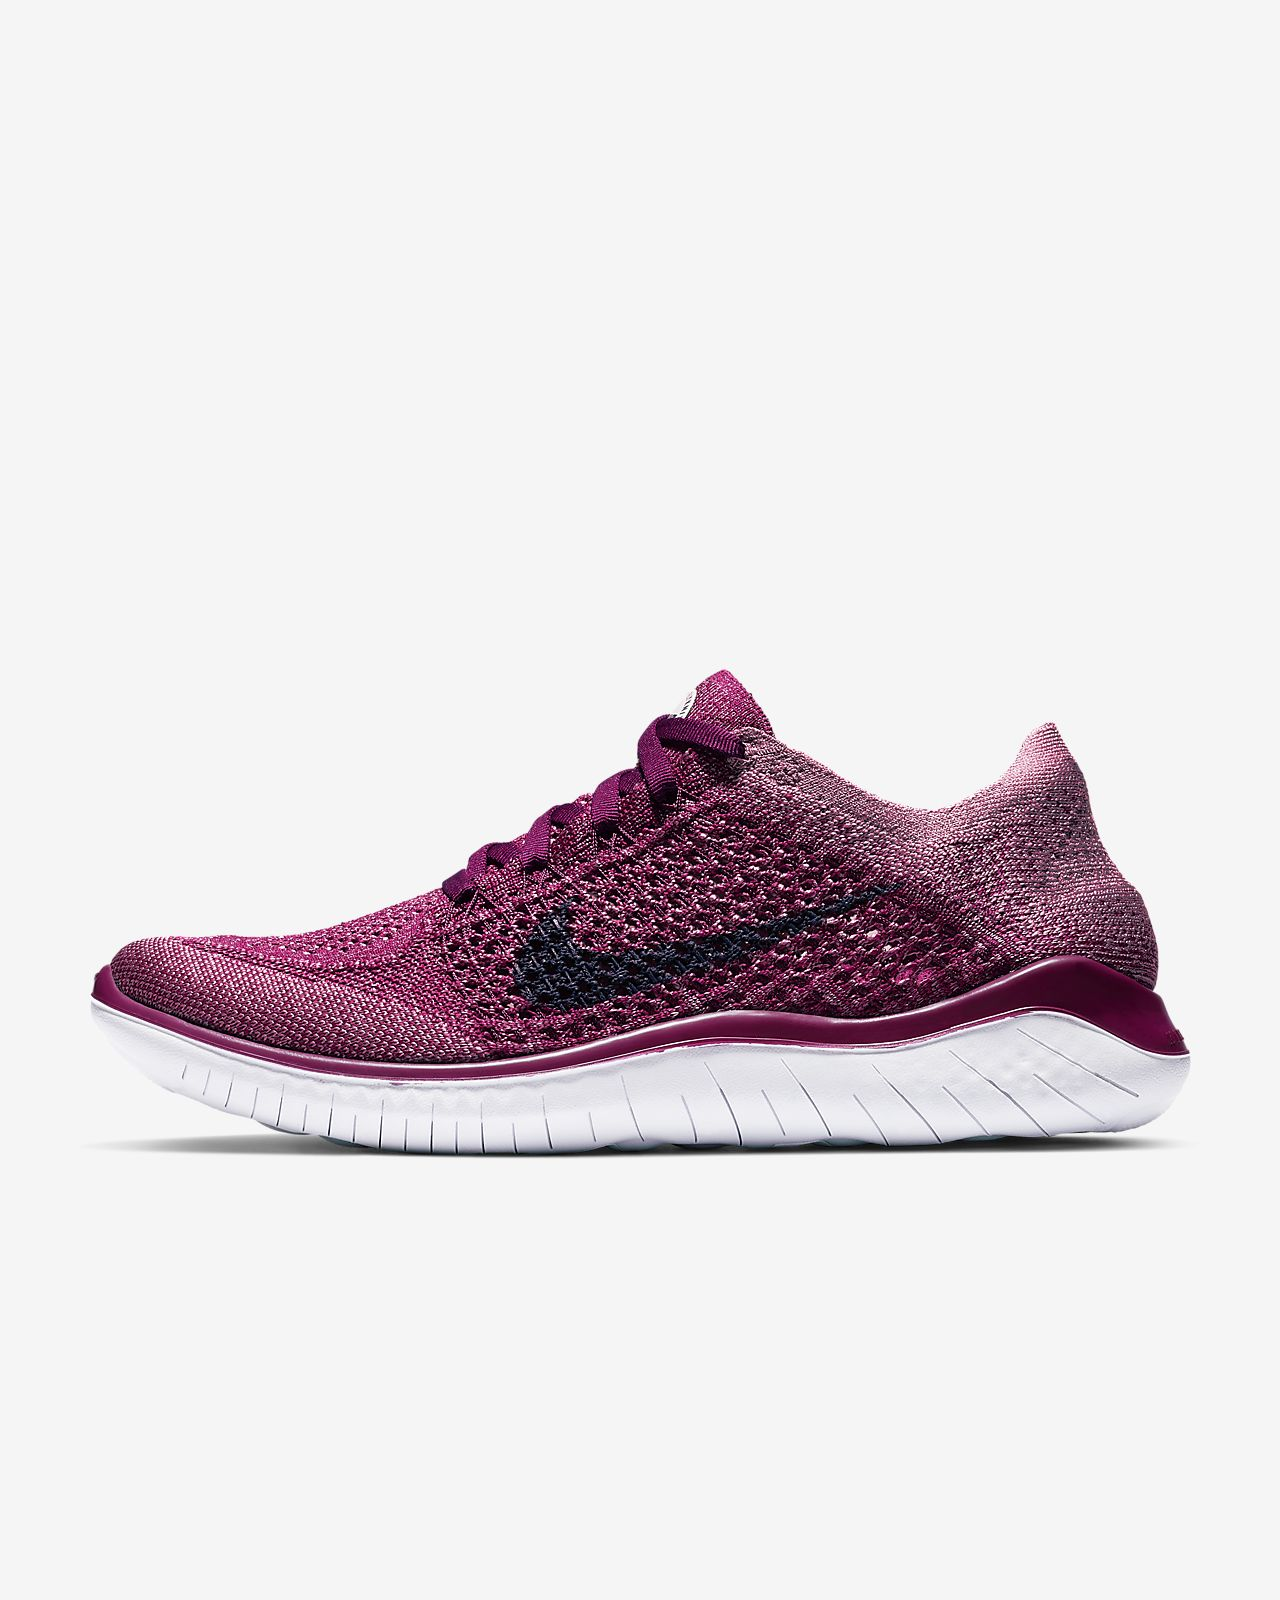 Nike Free RN 2018 Women's Running Shoe Philippines Guava Ice Rust Pink Sail Pink Tint